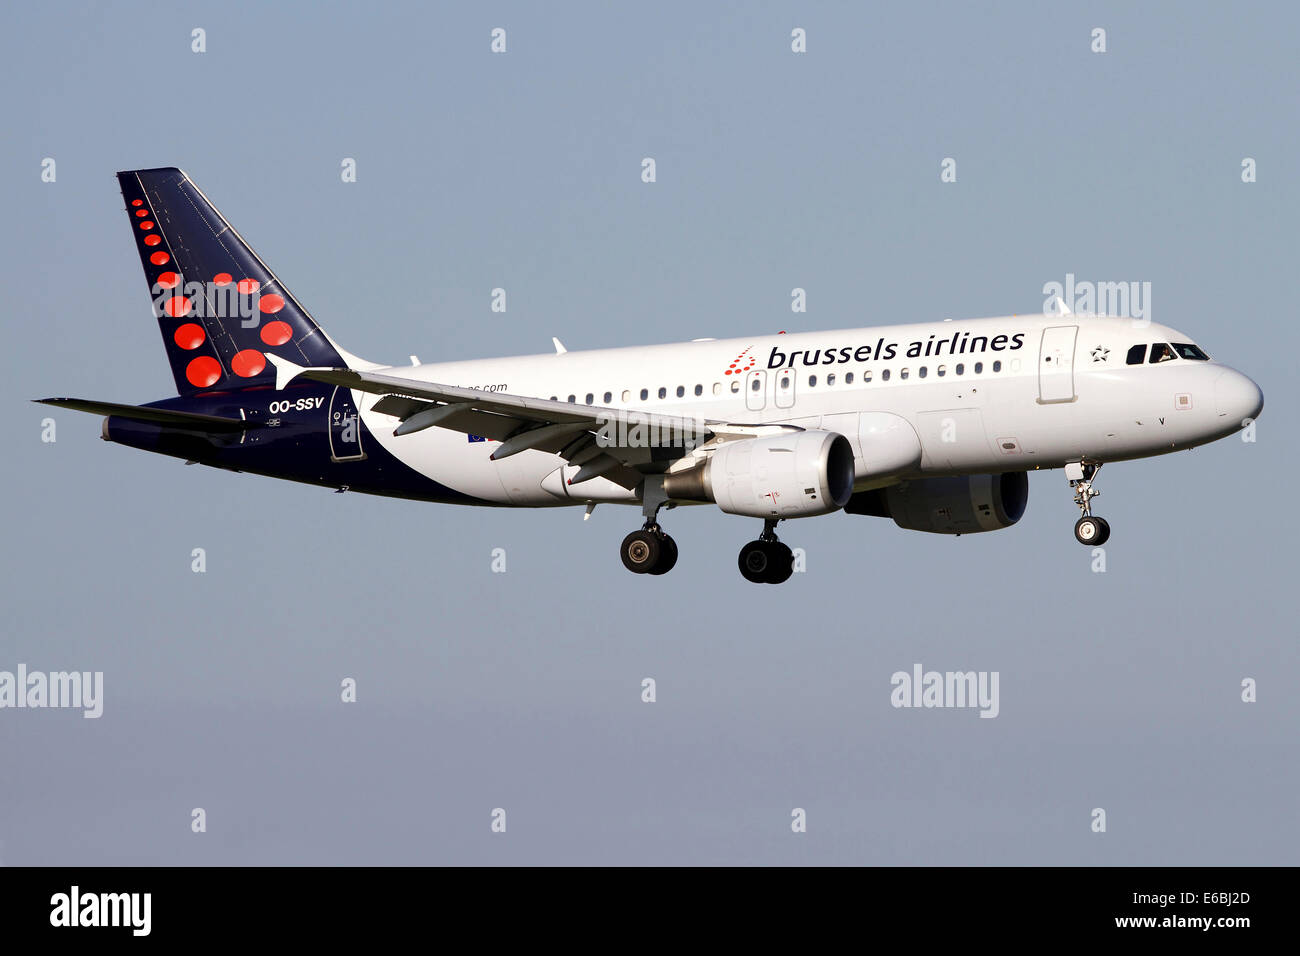 Airbus A319 of Brussels Airlines. - Stock Image